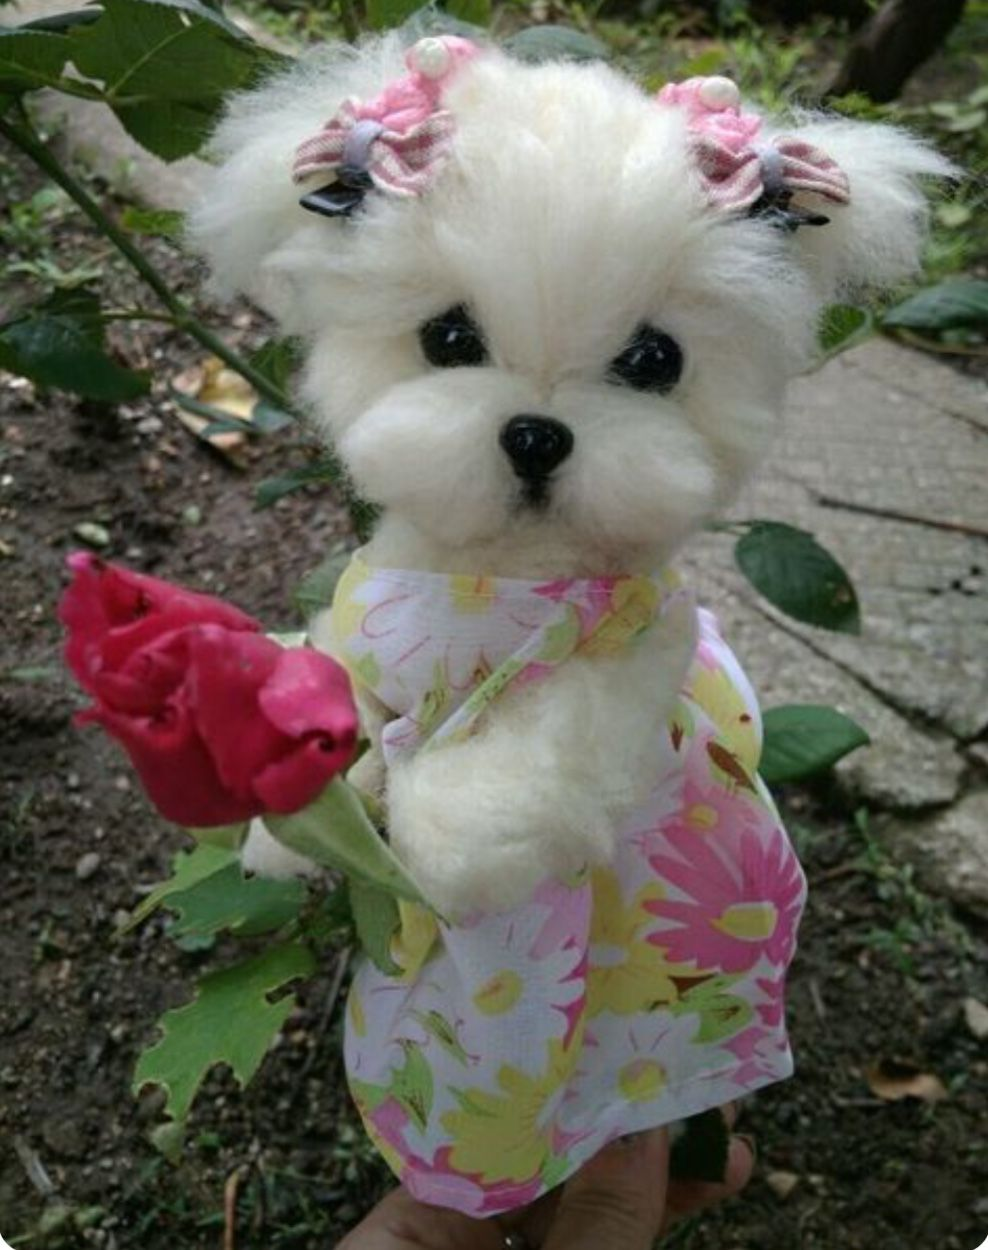 Pin By Adriana Benavidez On Just Too Cute Puppy Love Maltese Puppy Dog Purse Baby Dogs